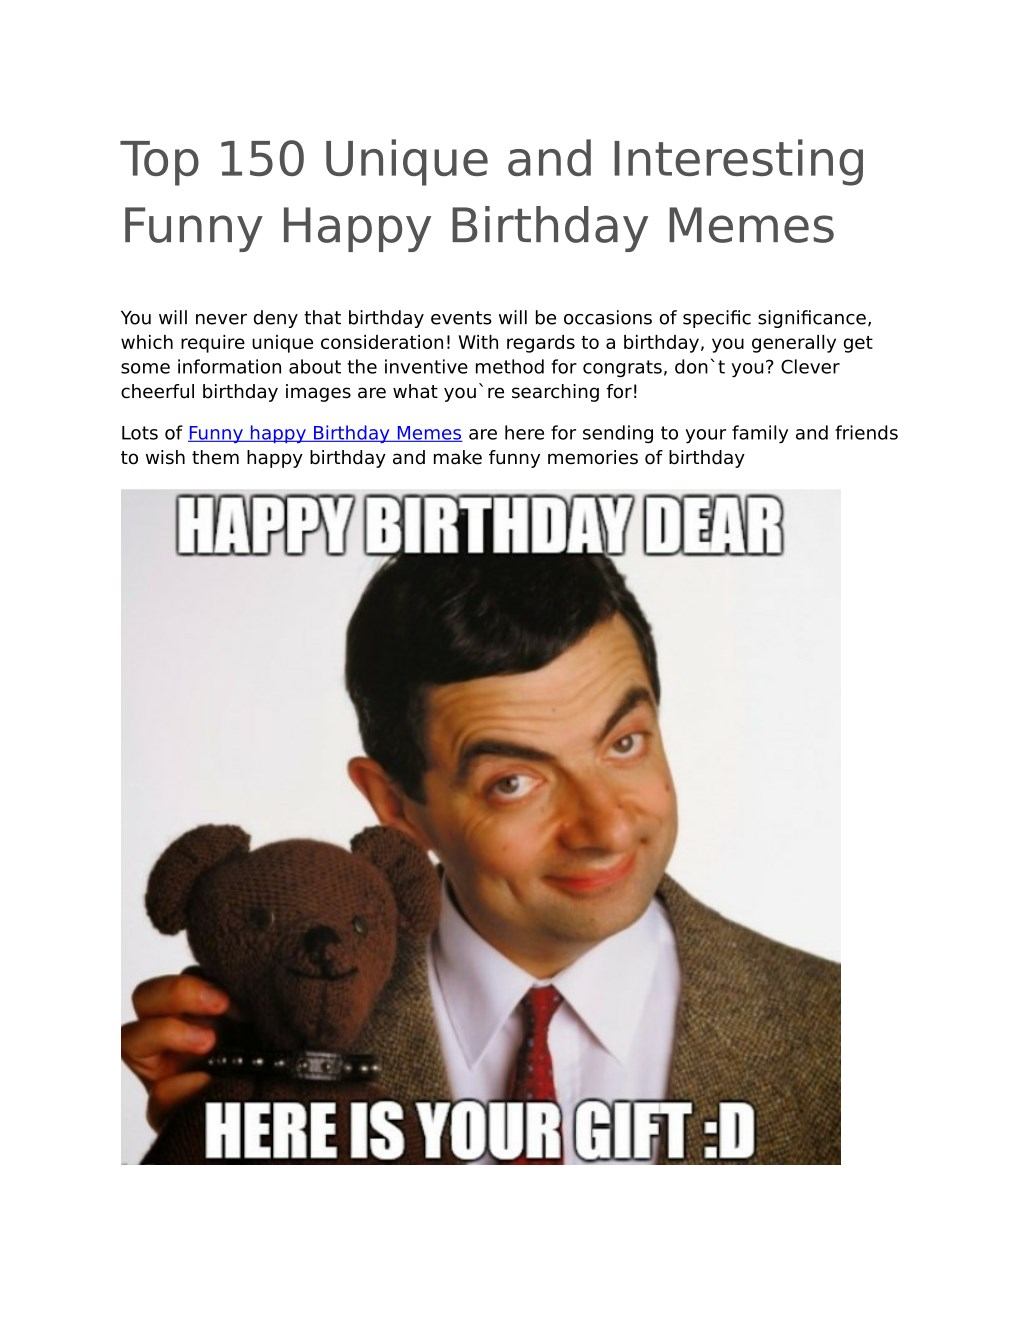 Ppt Funny Happy Birthday Memes Powerpoint Presentation Free Download Id 8029856